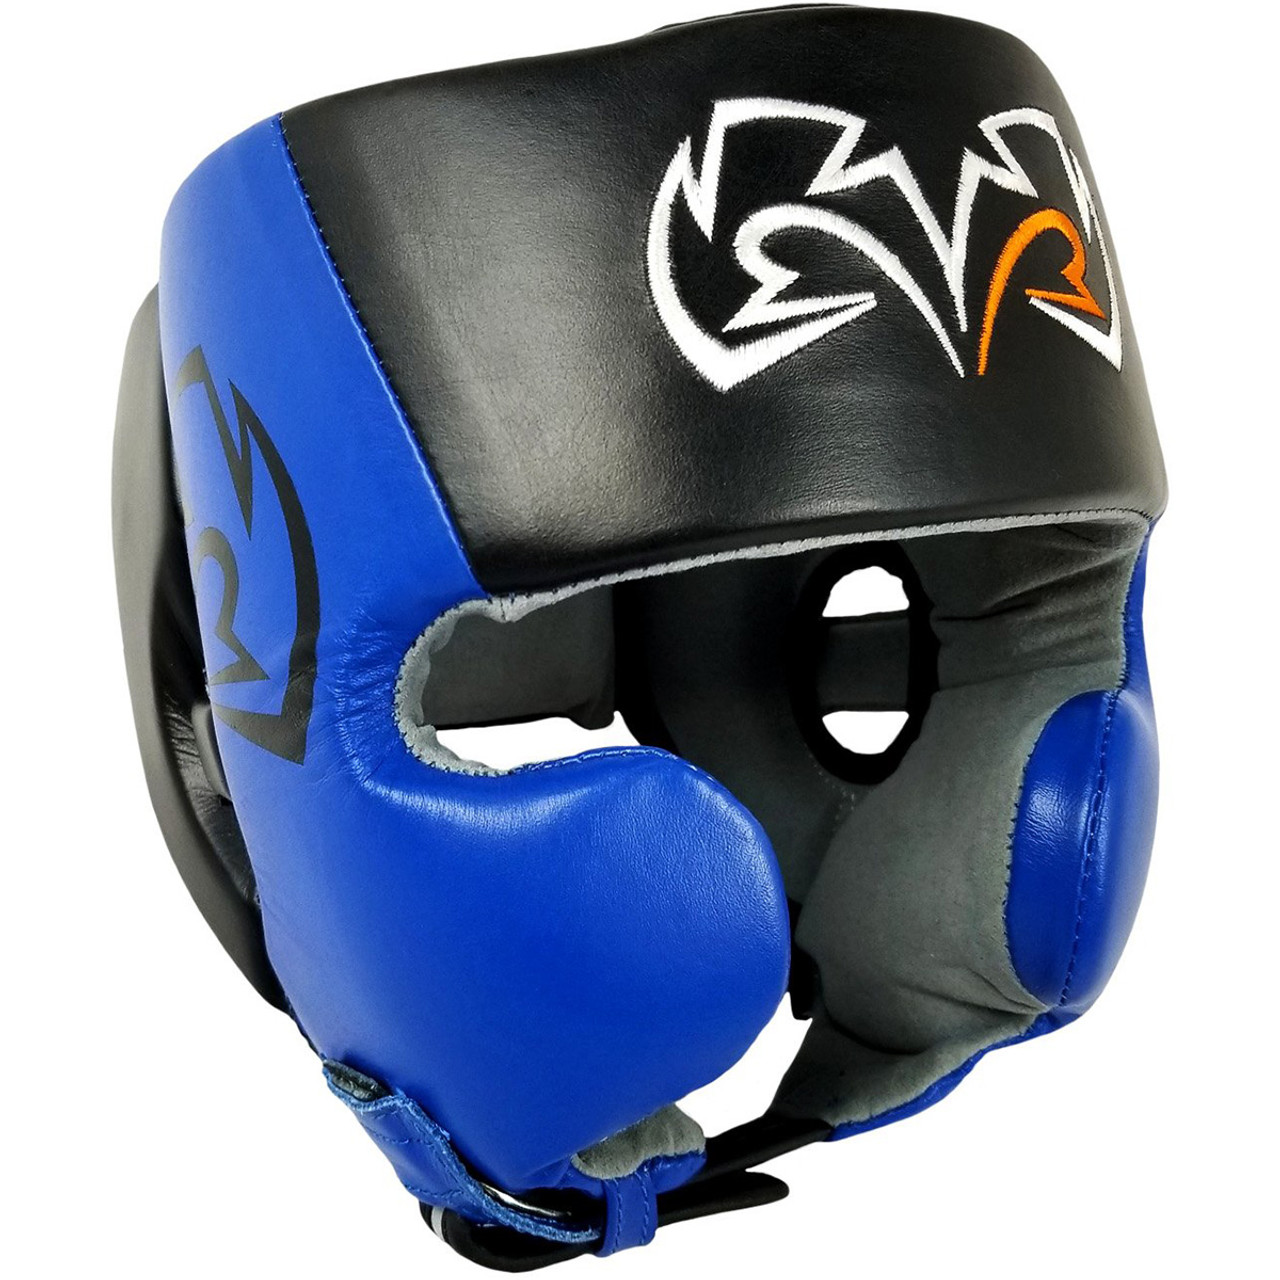 Rival Boxing RHG20 Training Headgear with Cheek Protectors